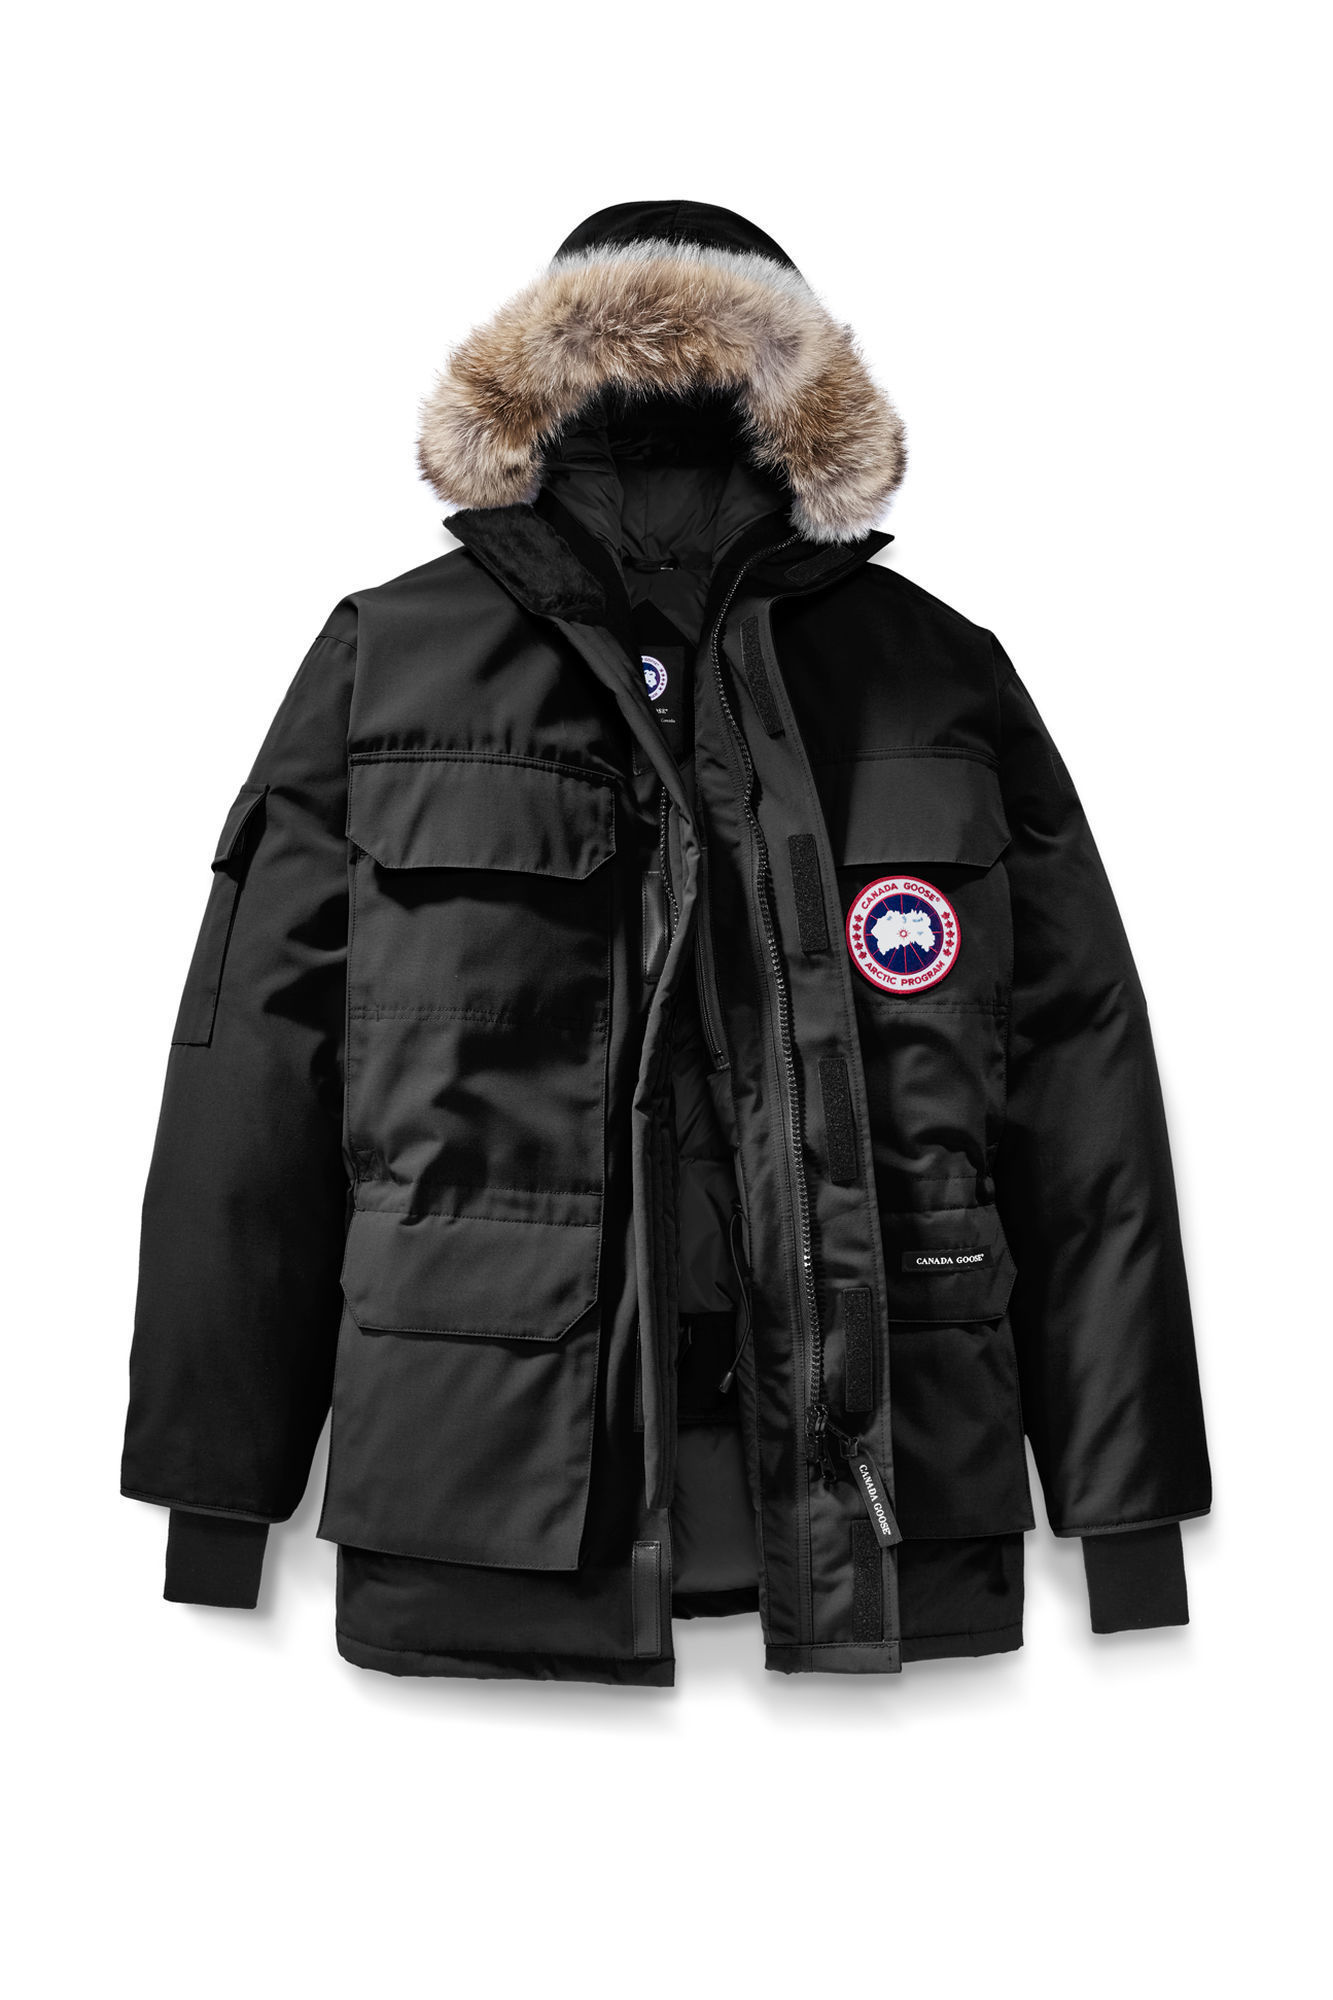 EXPEDITION PARKA BLACK MEN'S 4566